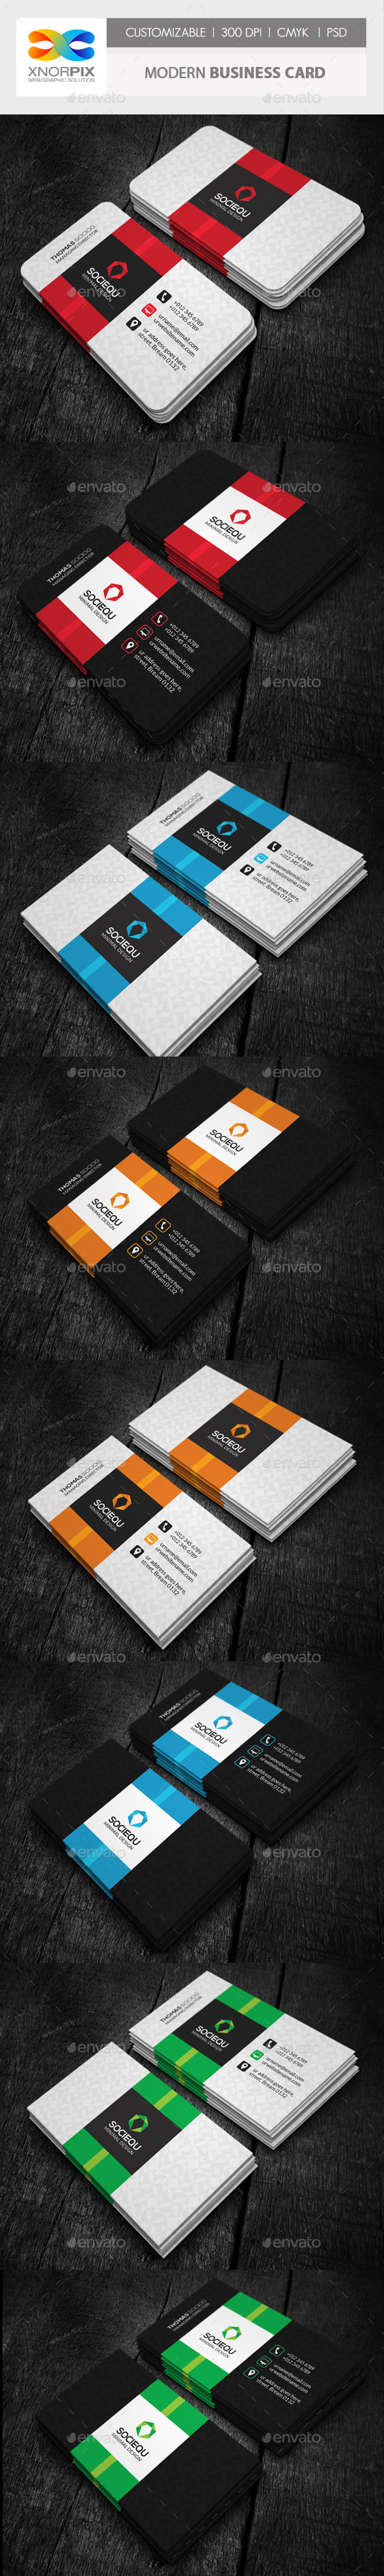 GraphicRiver Modern Business Card 10156336